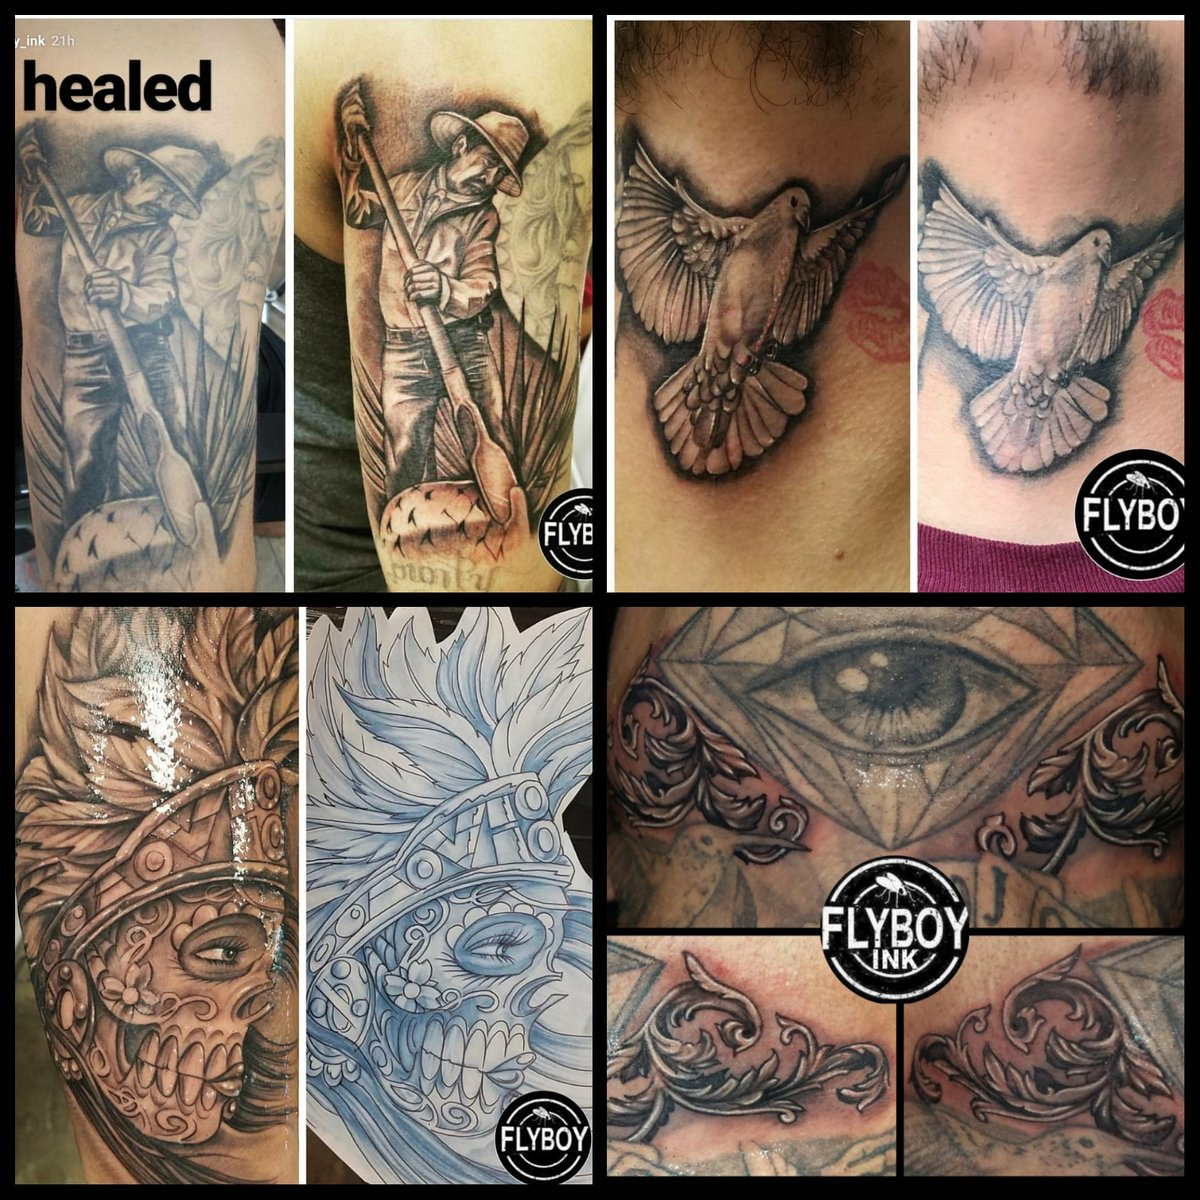 e5eb7e4c7 flyboy_ink Knuckleheads Tattoo Parlor (@InkFlyboy) | Twitter